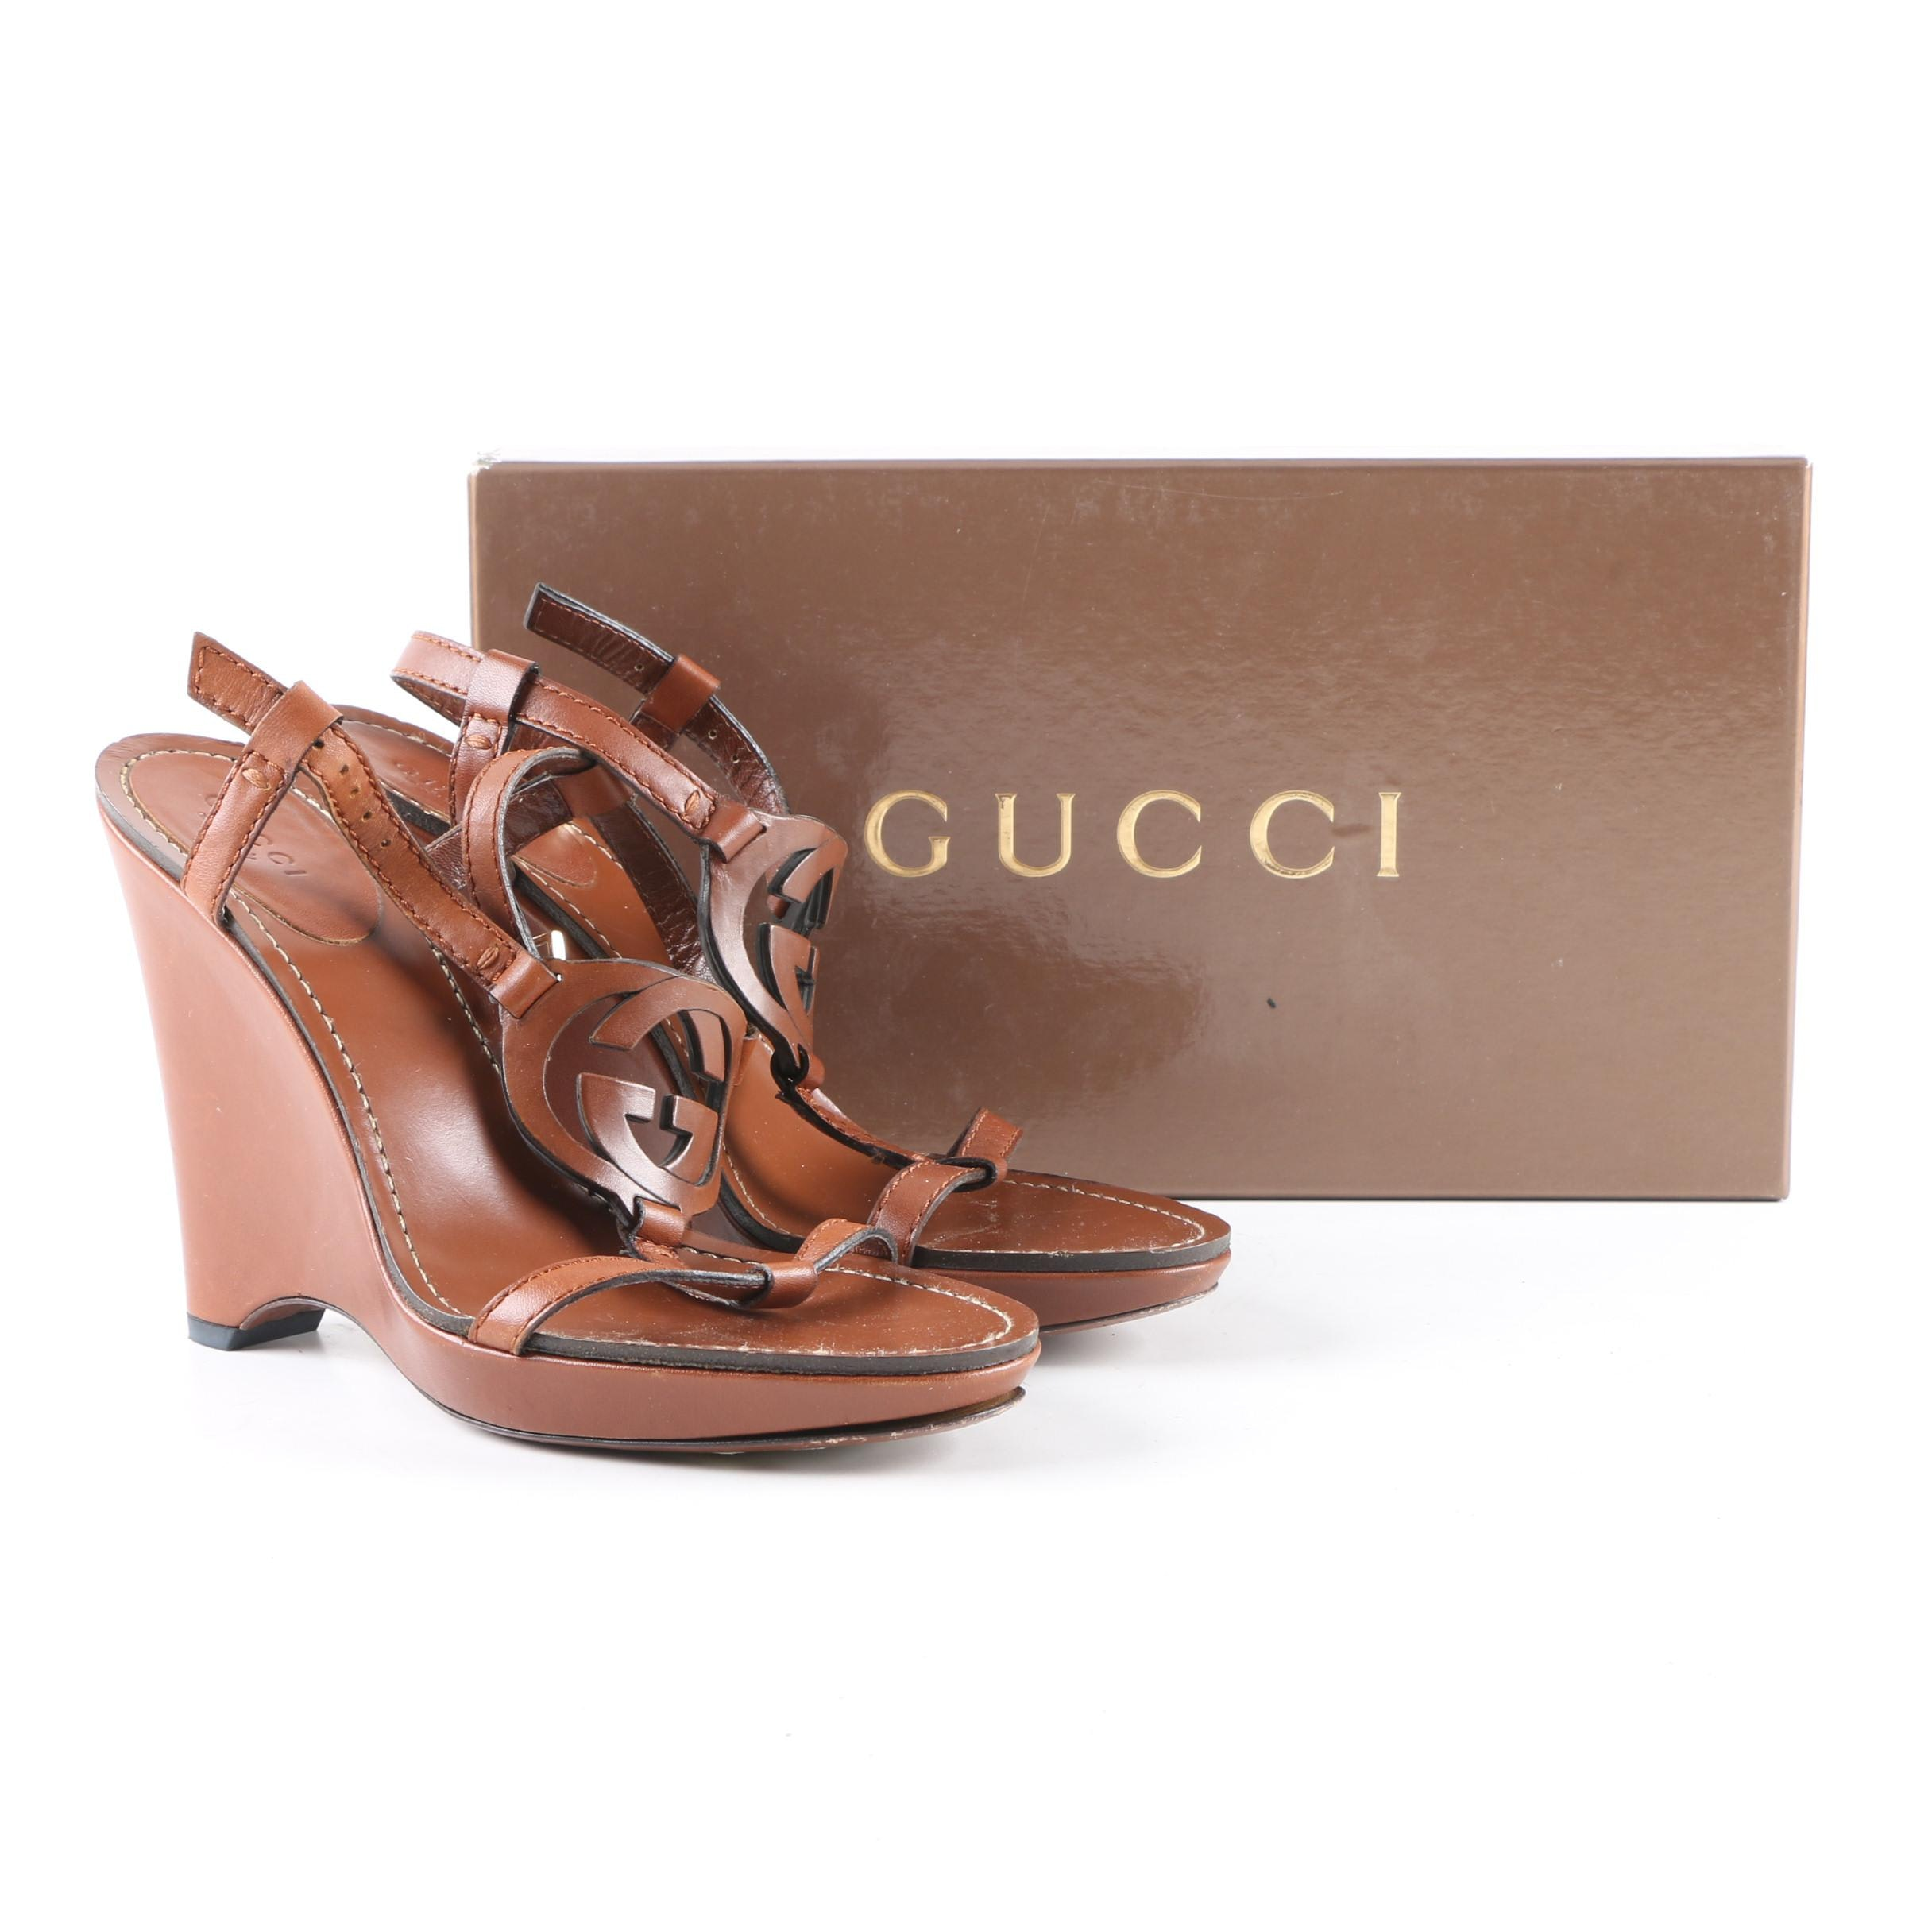 Women's Gucci Brown Leather Wedge Sandals